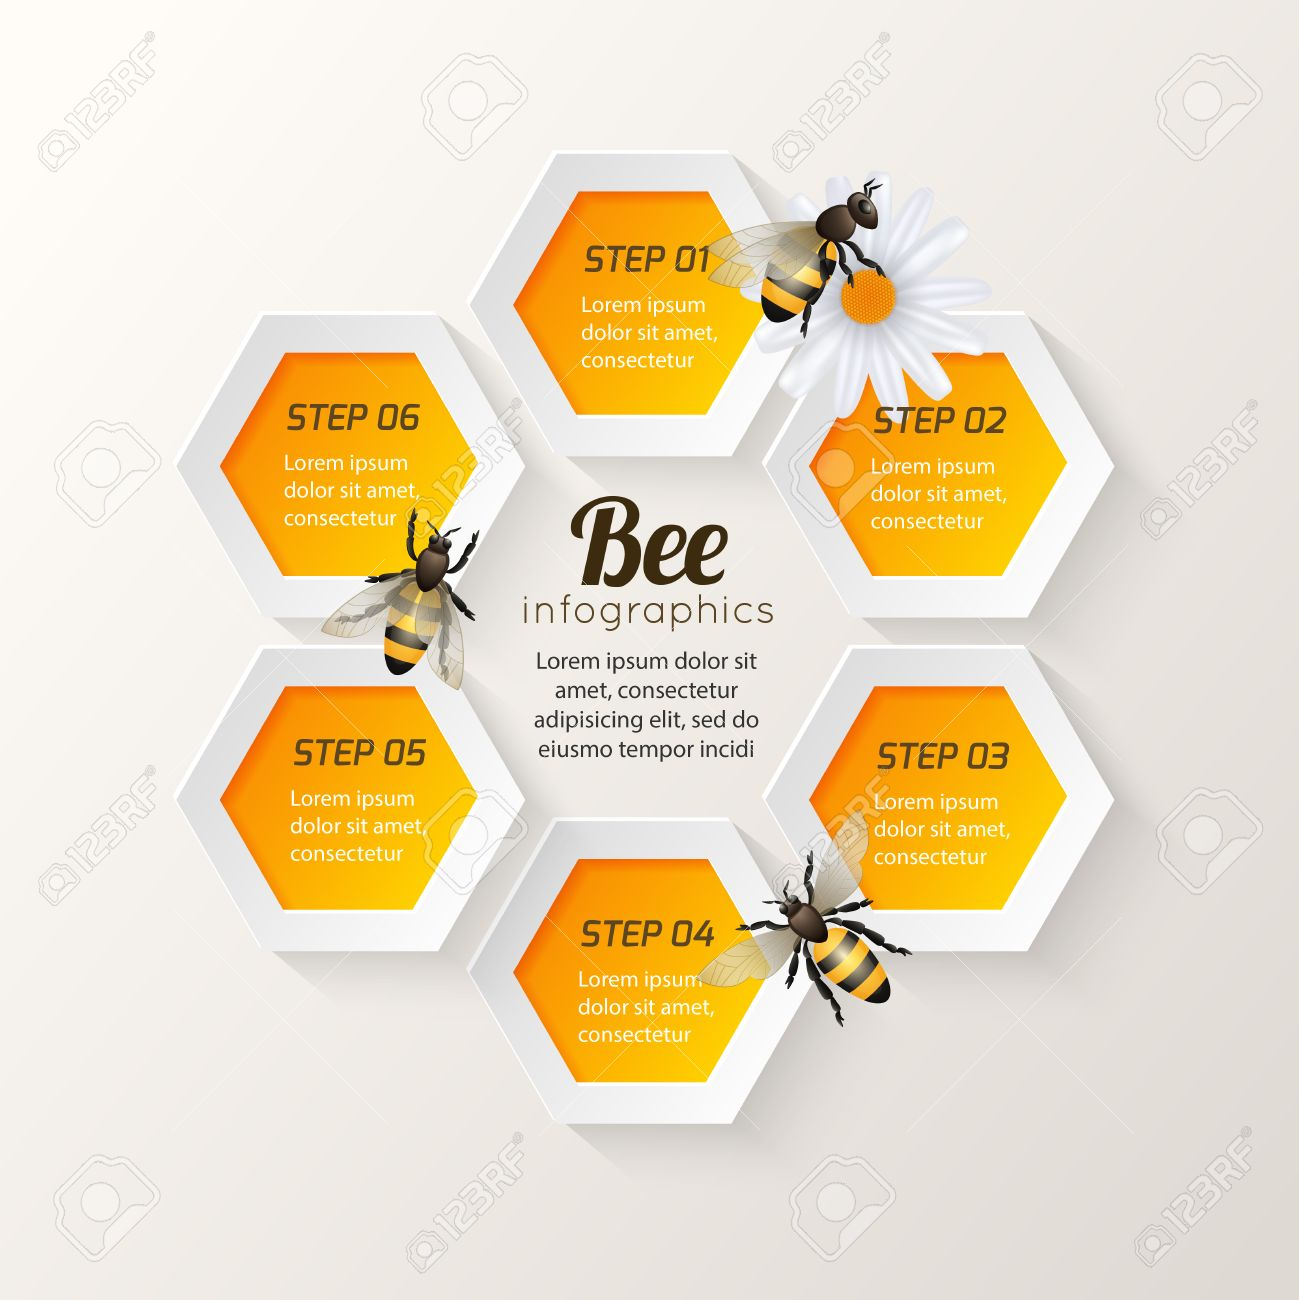 Honey bee on daisy and comb background hexagon steps infographic honey bee on daisy and comb background hexagon steps infographic vector illustration stock vector 28799303 ccuart Images